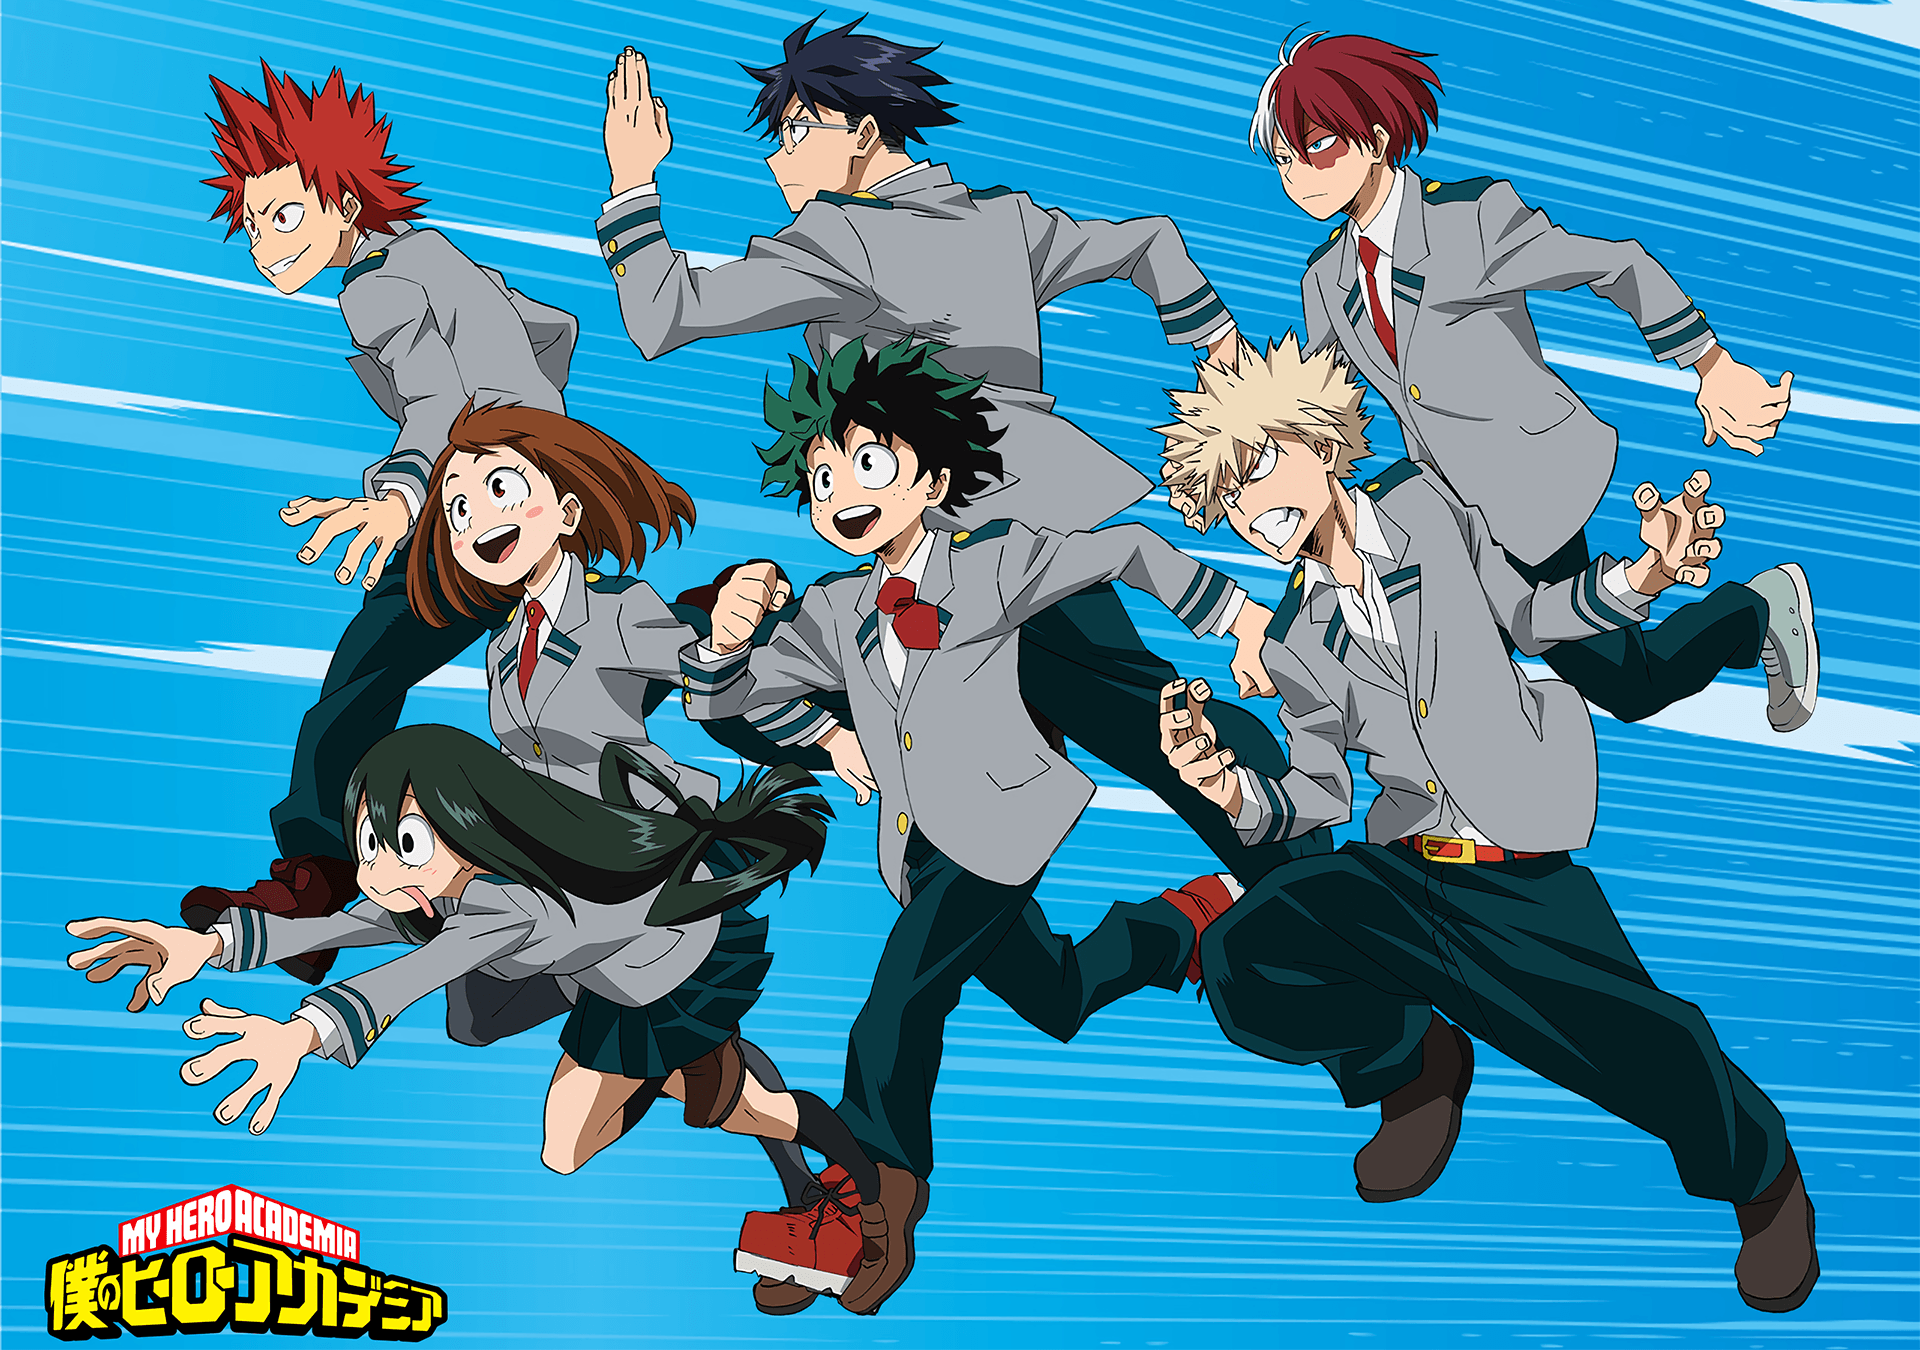 boku no hero academia wallpaper images (1) - HD Wallpapers Buzz